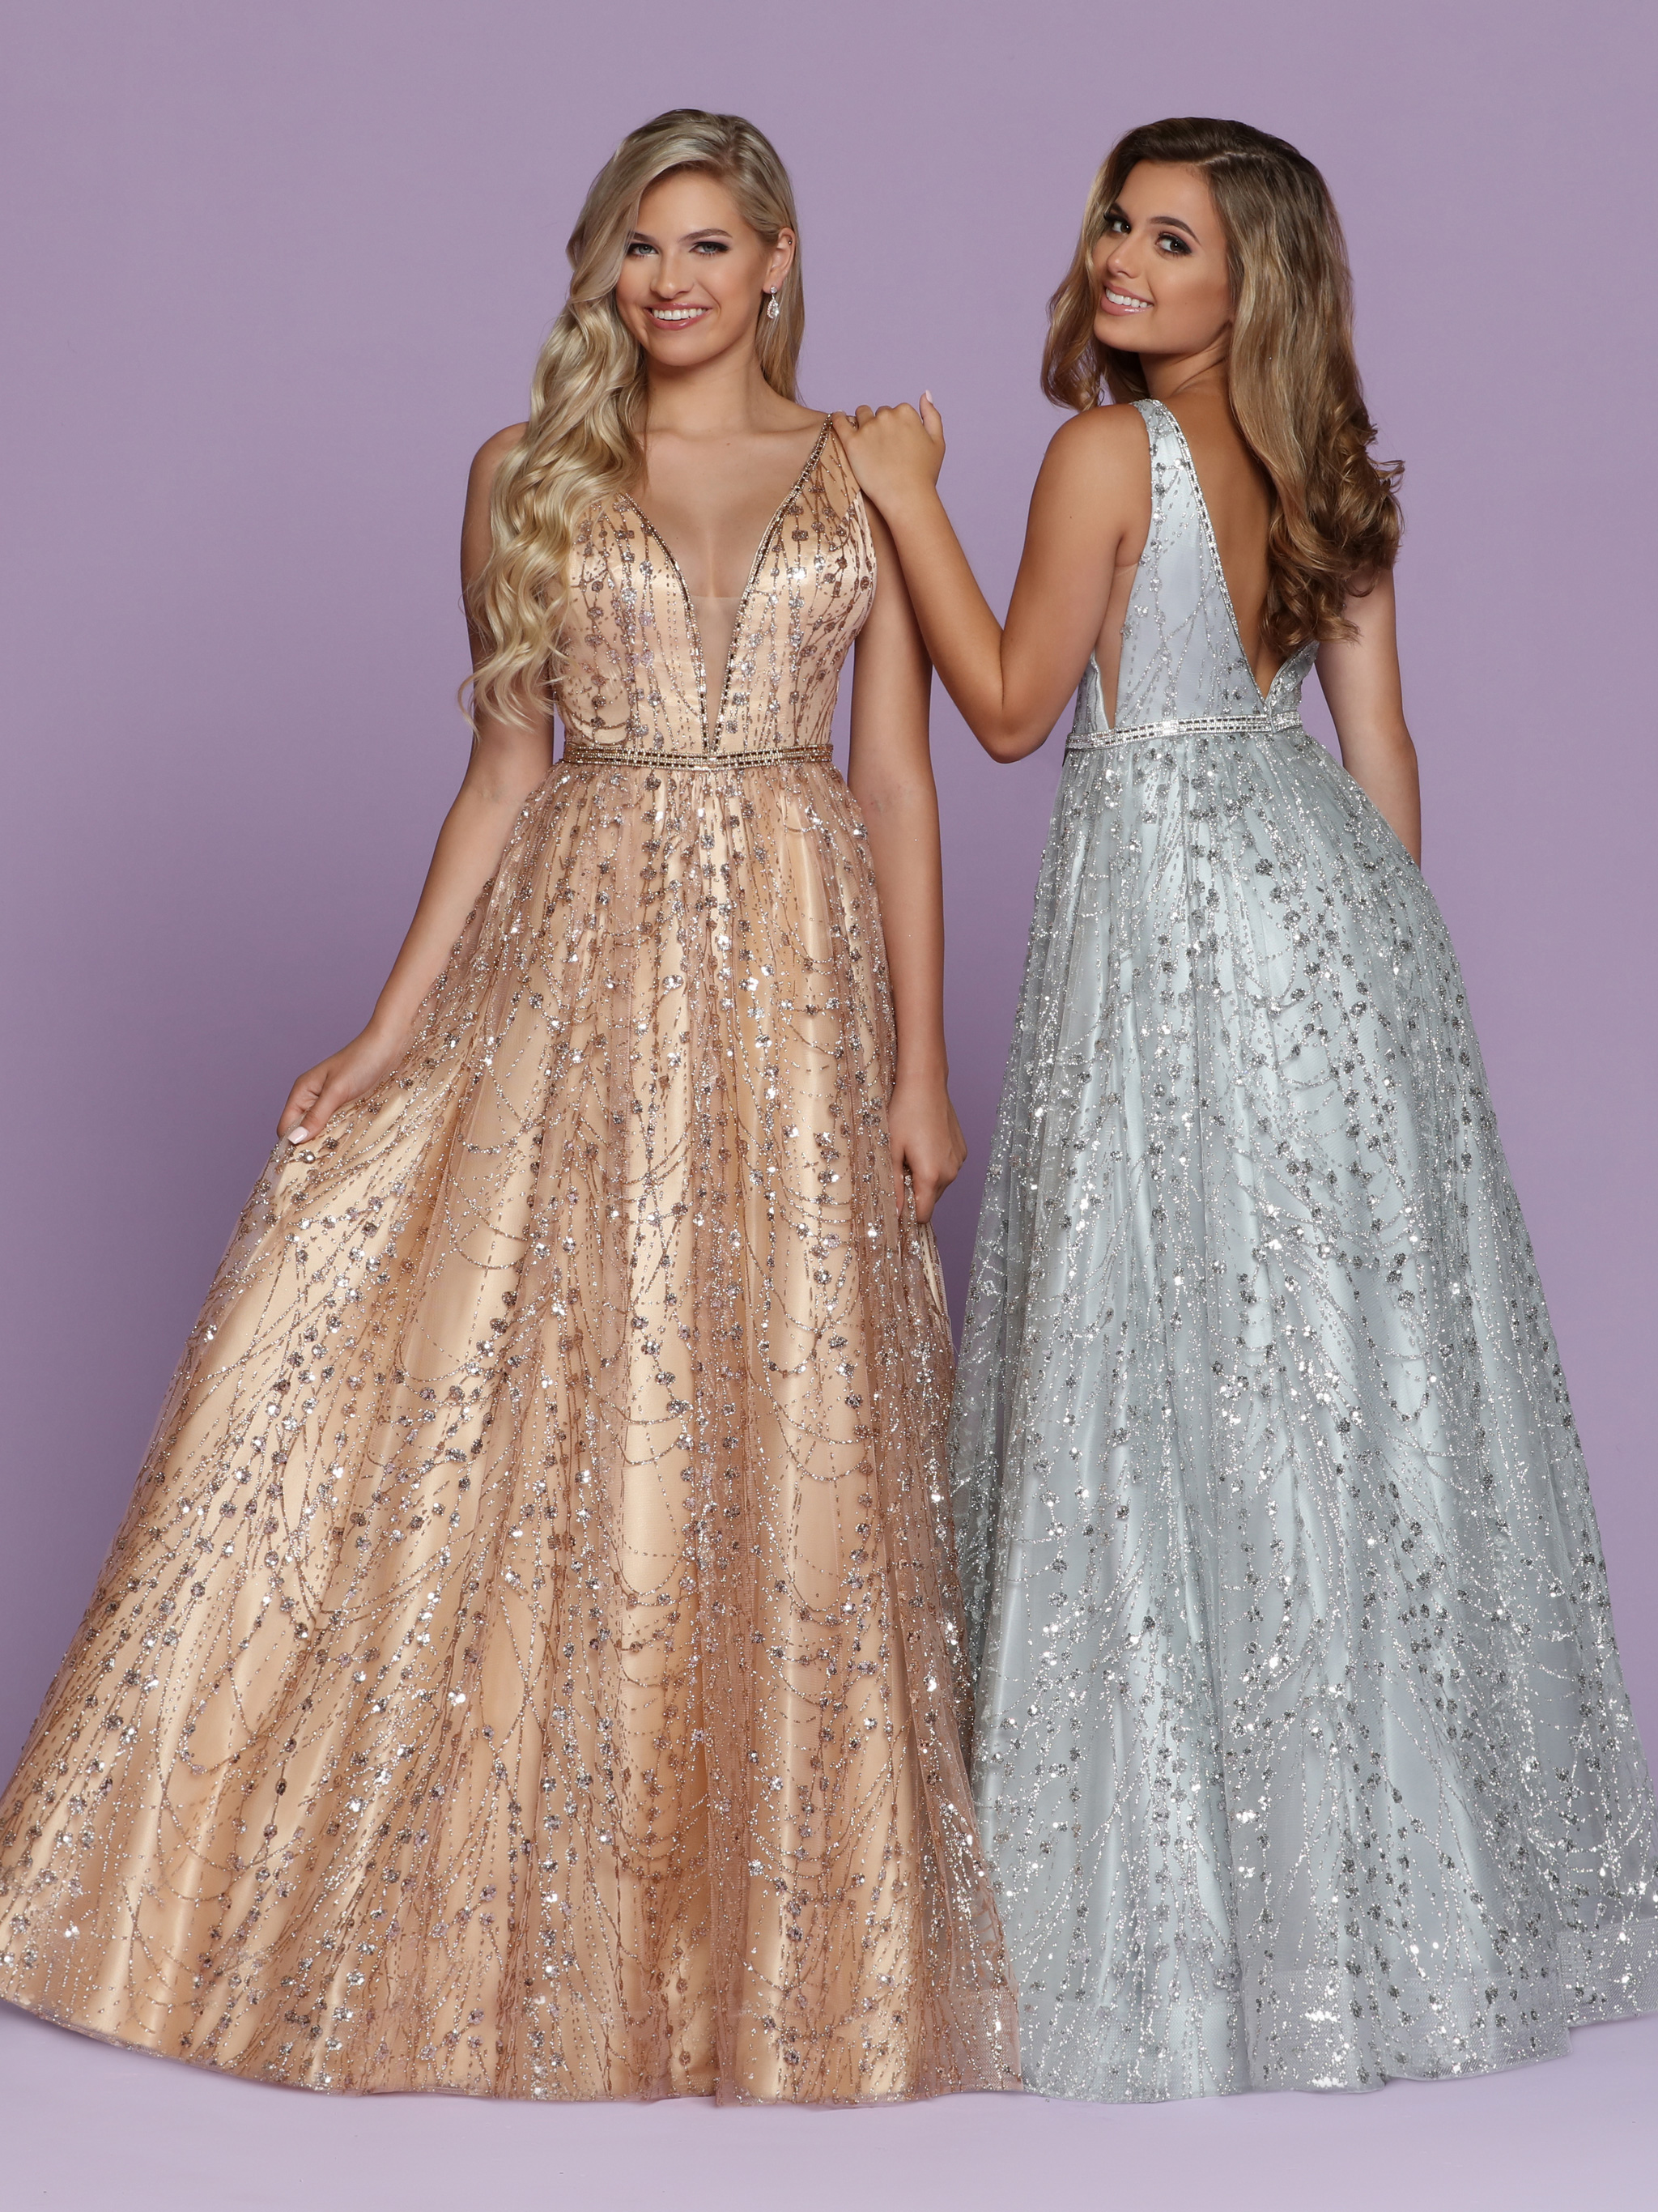 Glitter Tulle Prom & Homecoming Dresses for 2020 – Sparkle Prom